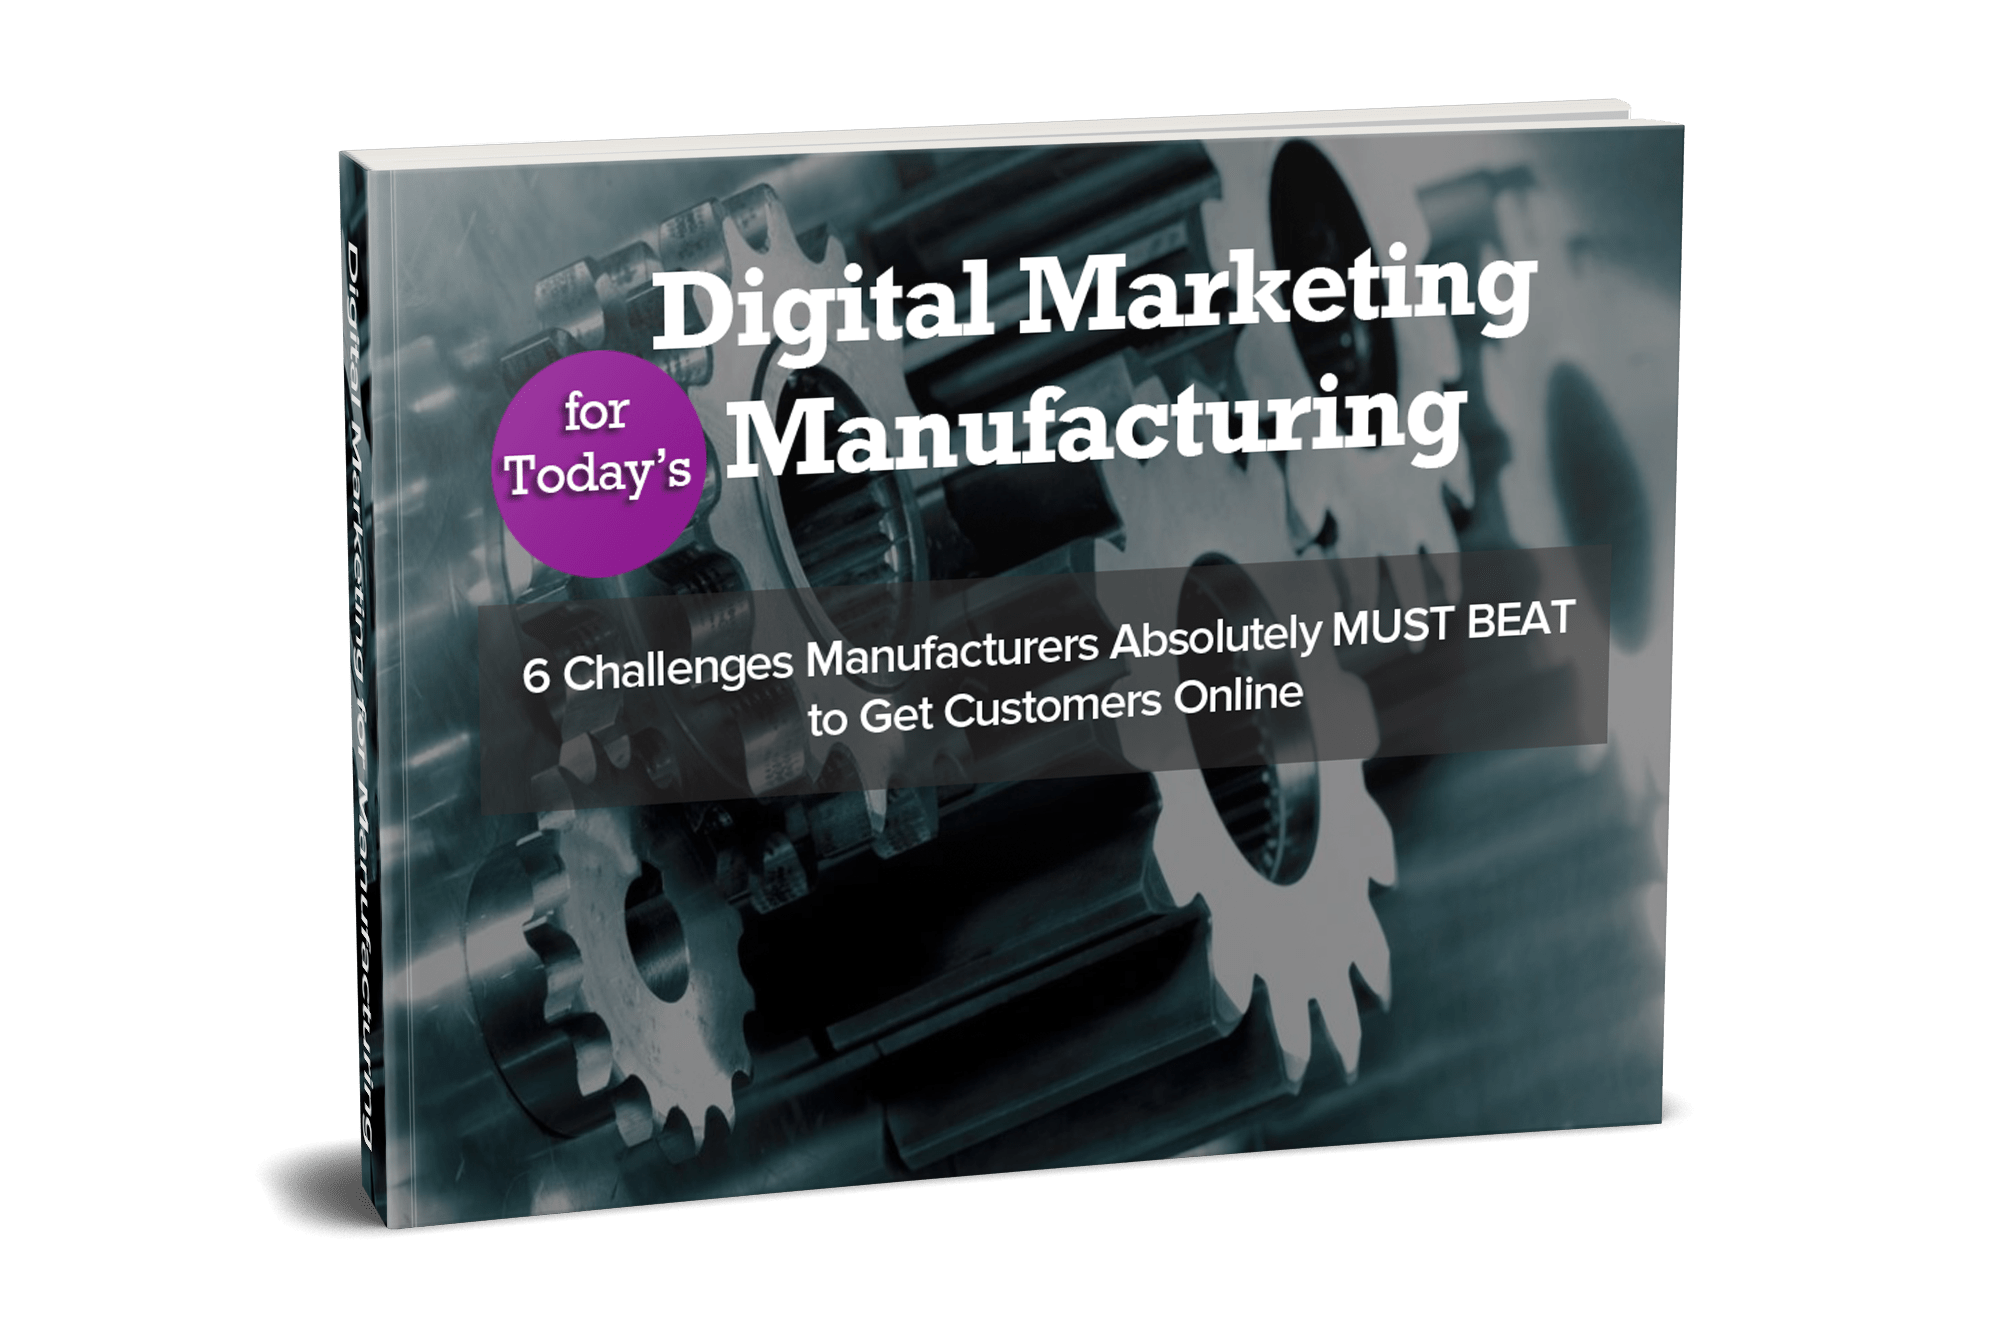 Digital Marketing Manufacturing